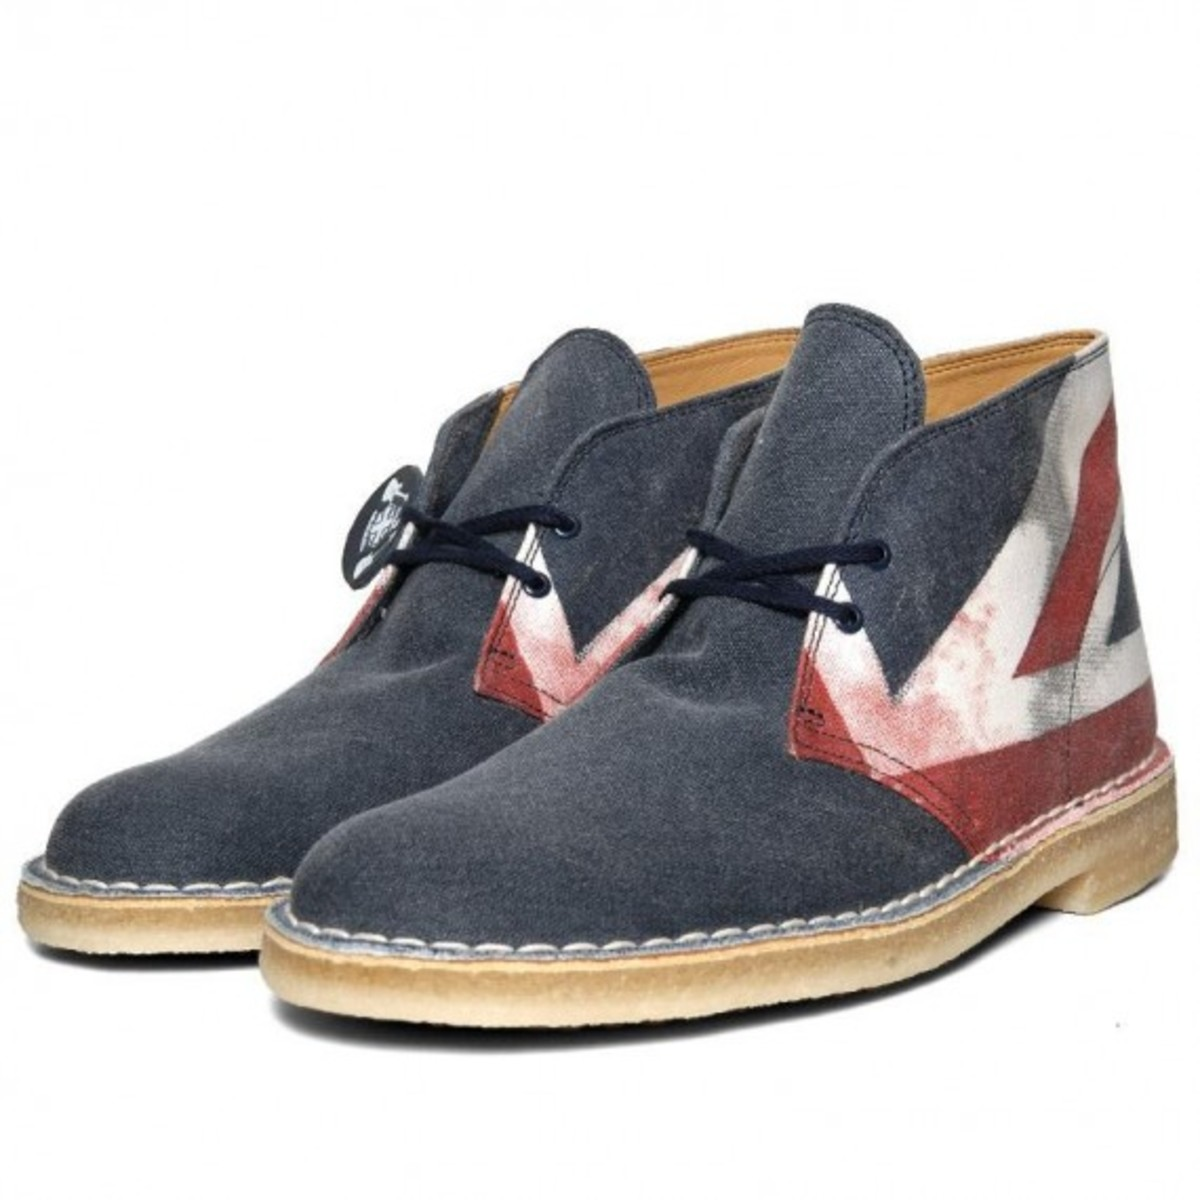 clarks-originals-desert-boot-punk-edition-01